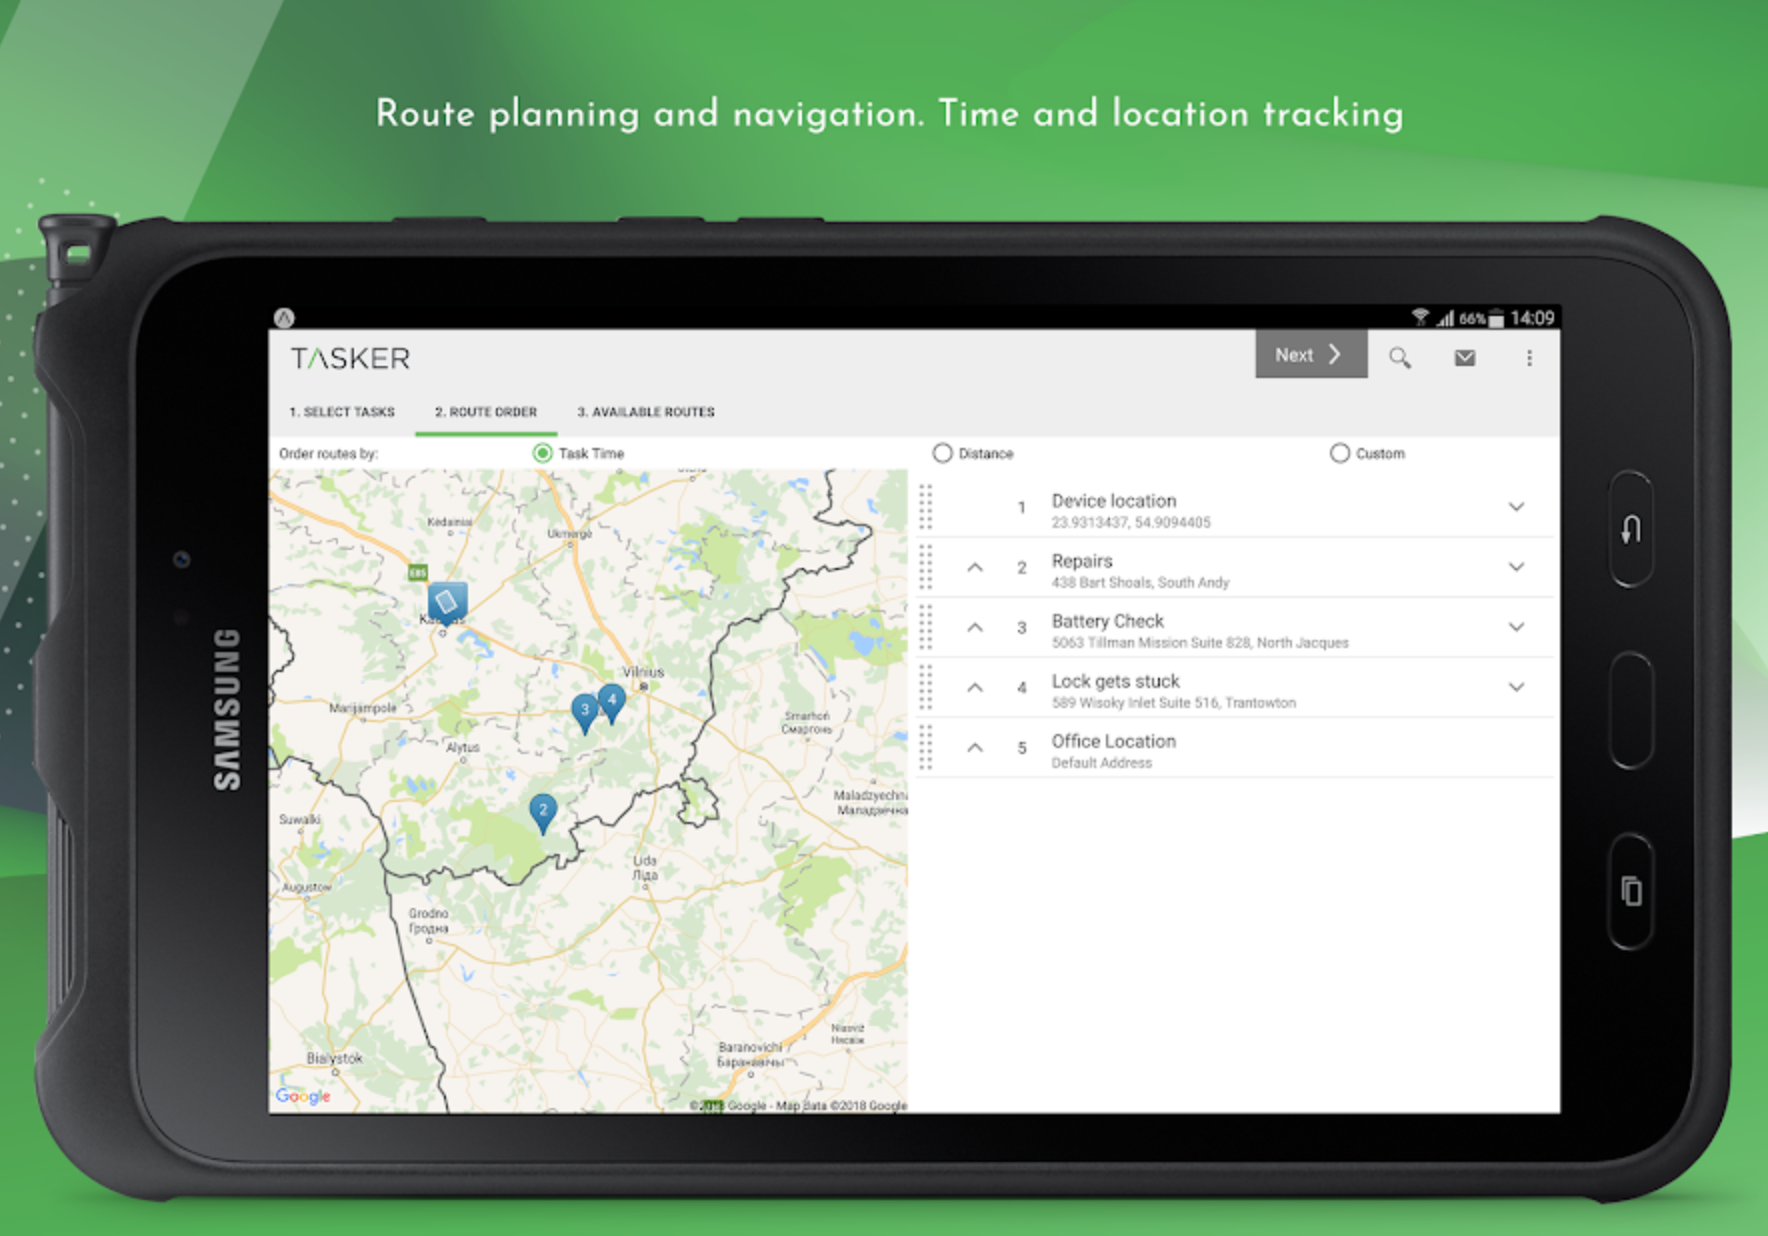 Plan routes with real-time navigation for time and location tracking